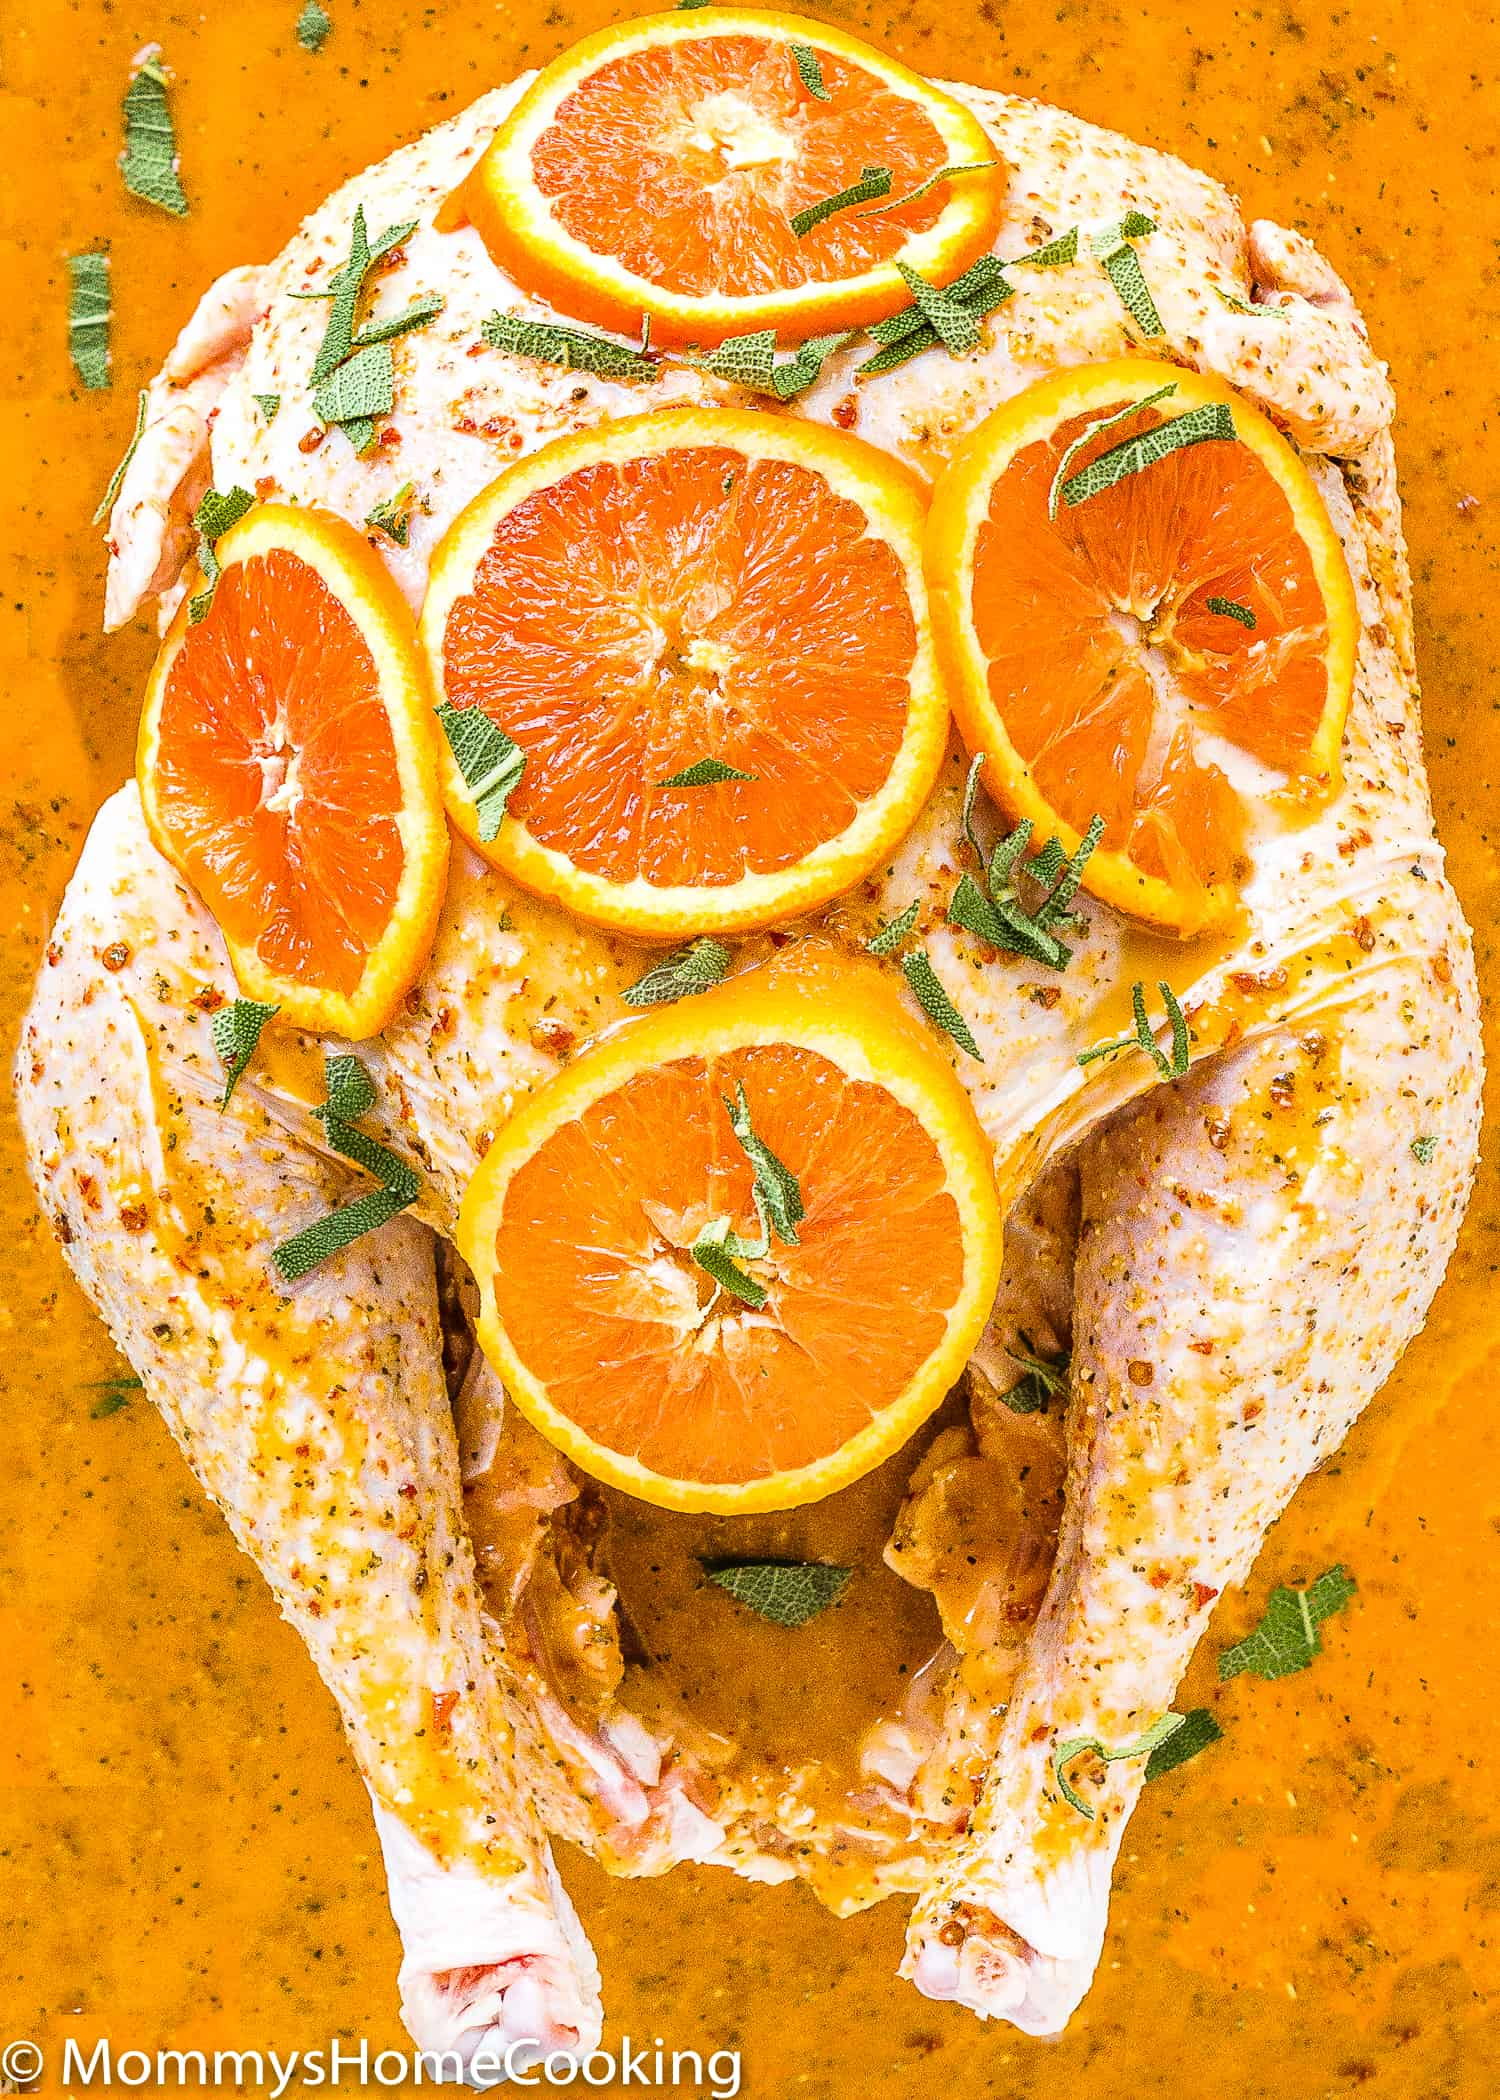 Look no further for the Best Turkey Marinade recipe ever! This BEST Citrus-Chipotle Turkey Marinade not only keeps your turkey moist but incredibly flavorful. Simple to prepare, and totally delicious. https://mommyshomecooking.com